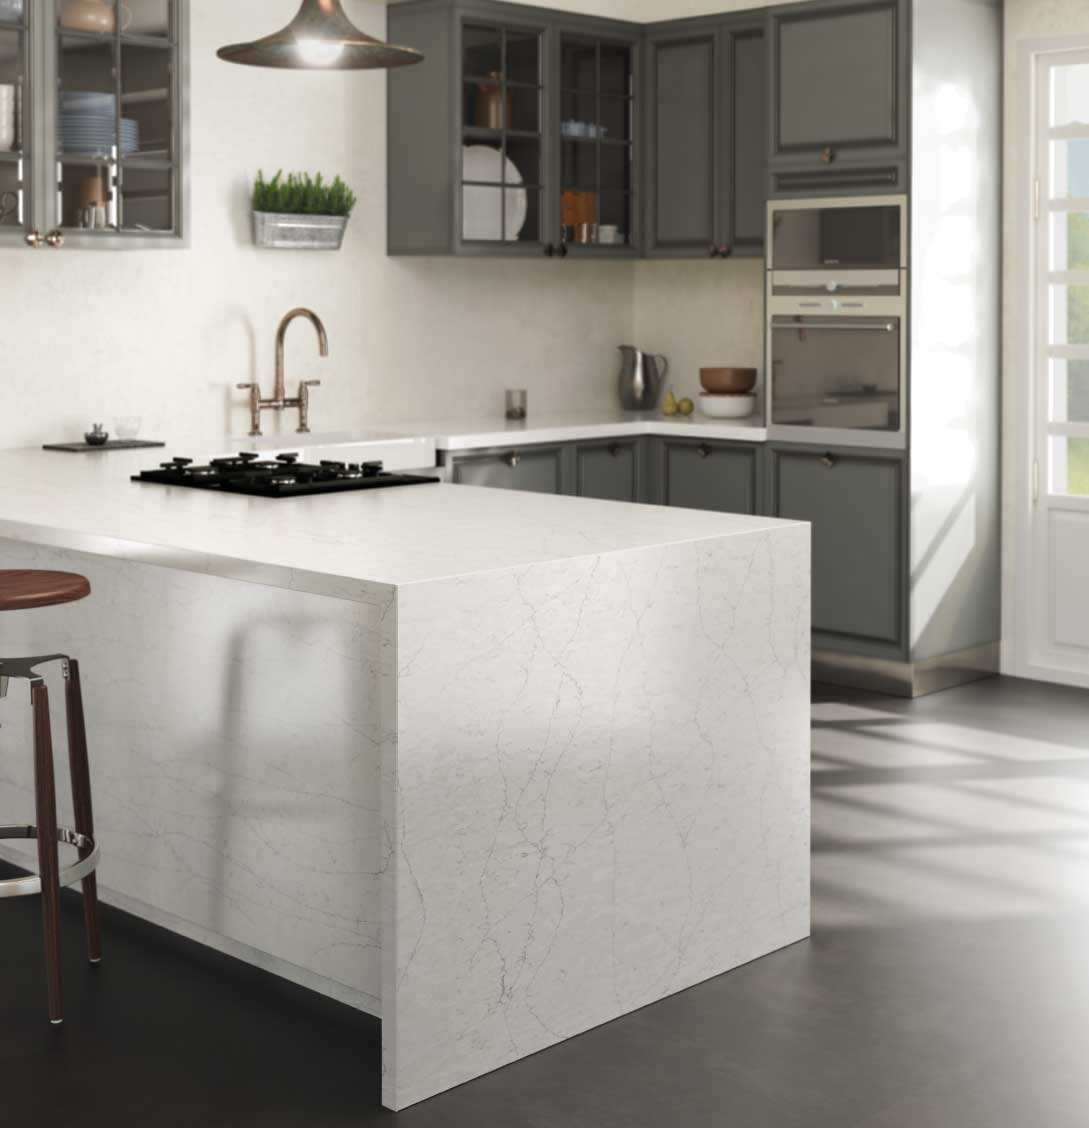 Silestone Pearl Jasmine quartz countertop kitchen